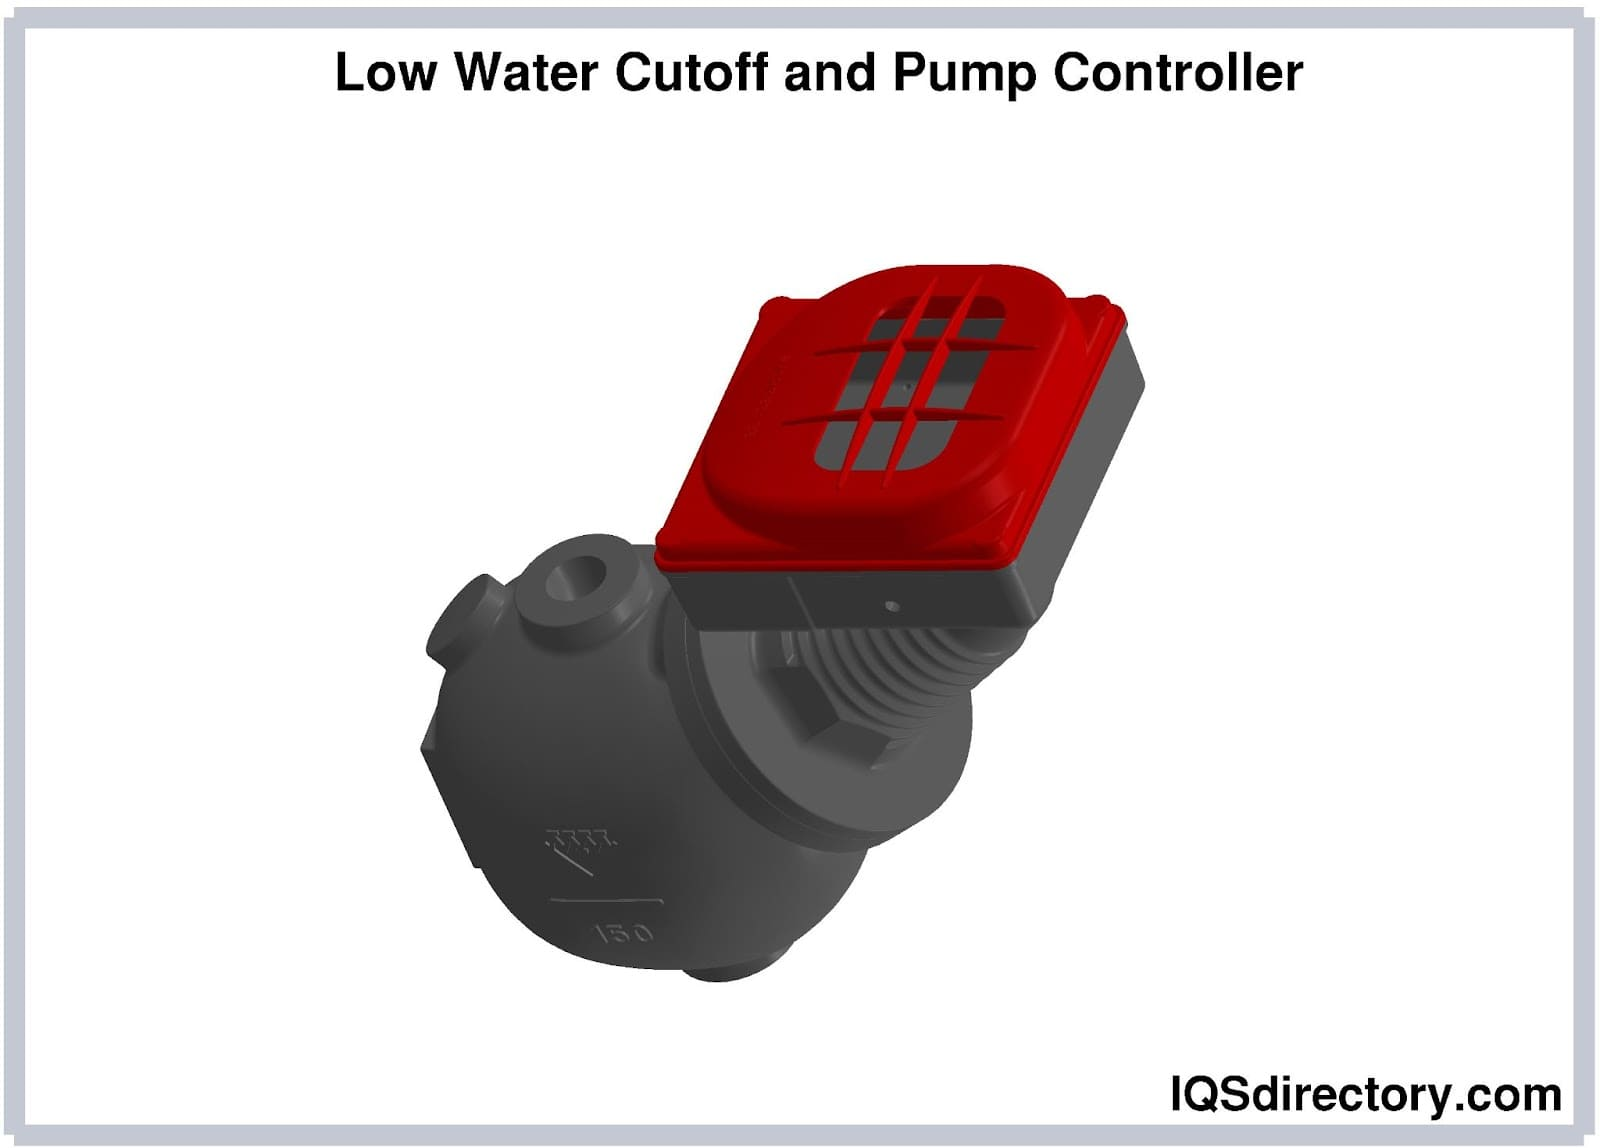 Low Water Cutoff and Pump Controller